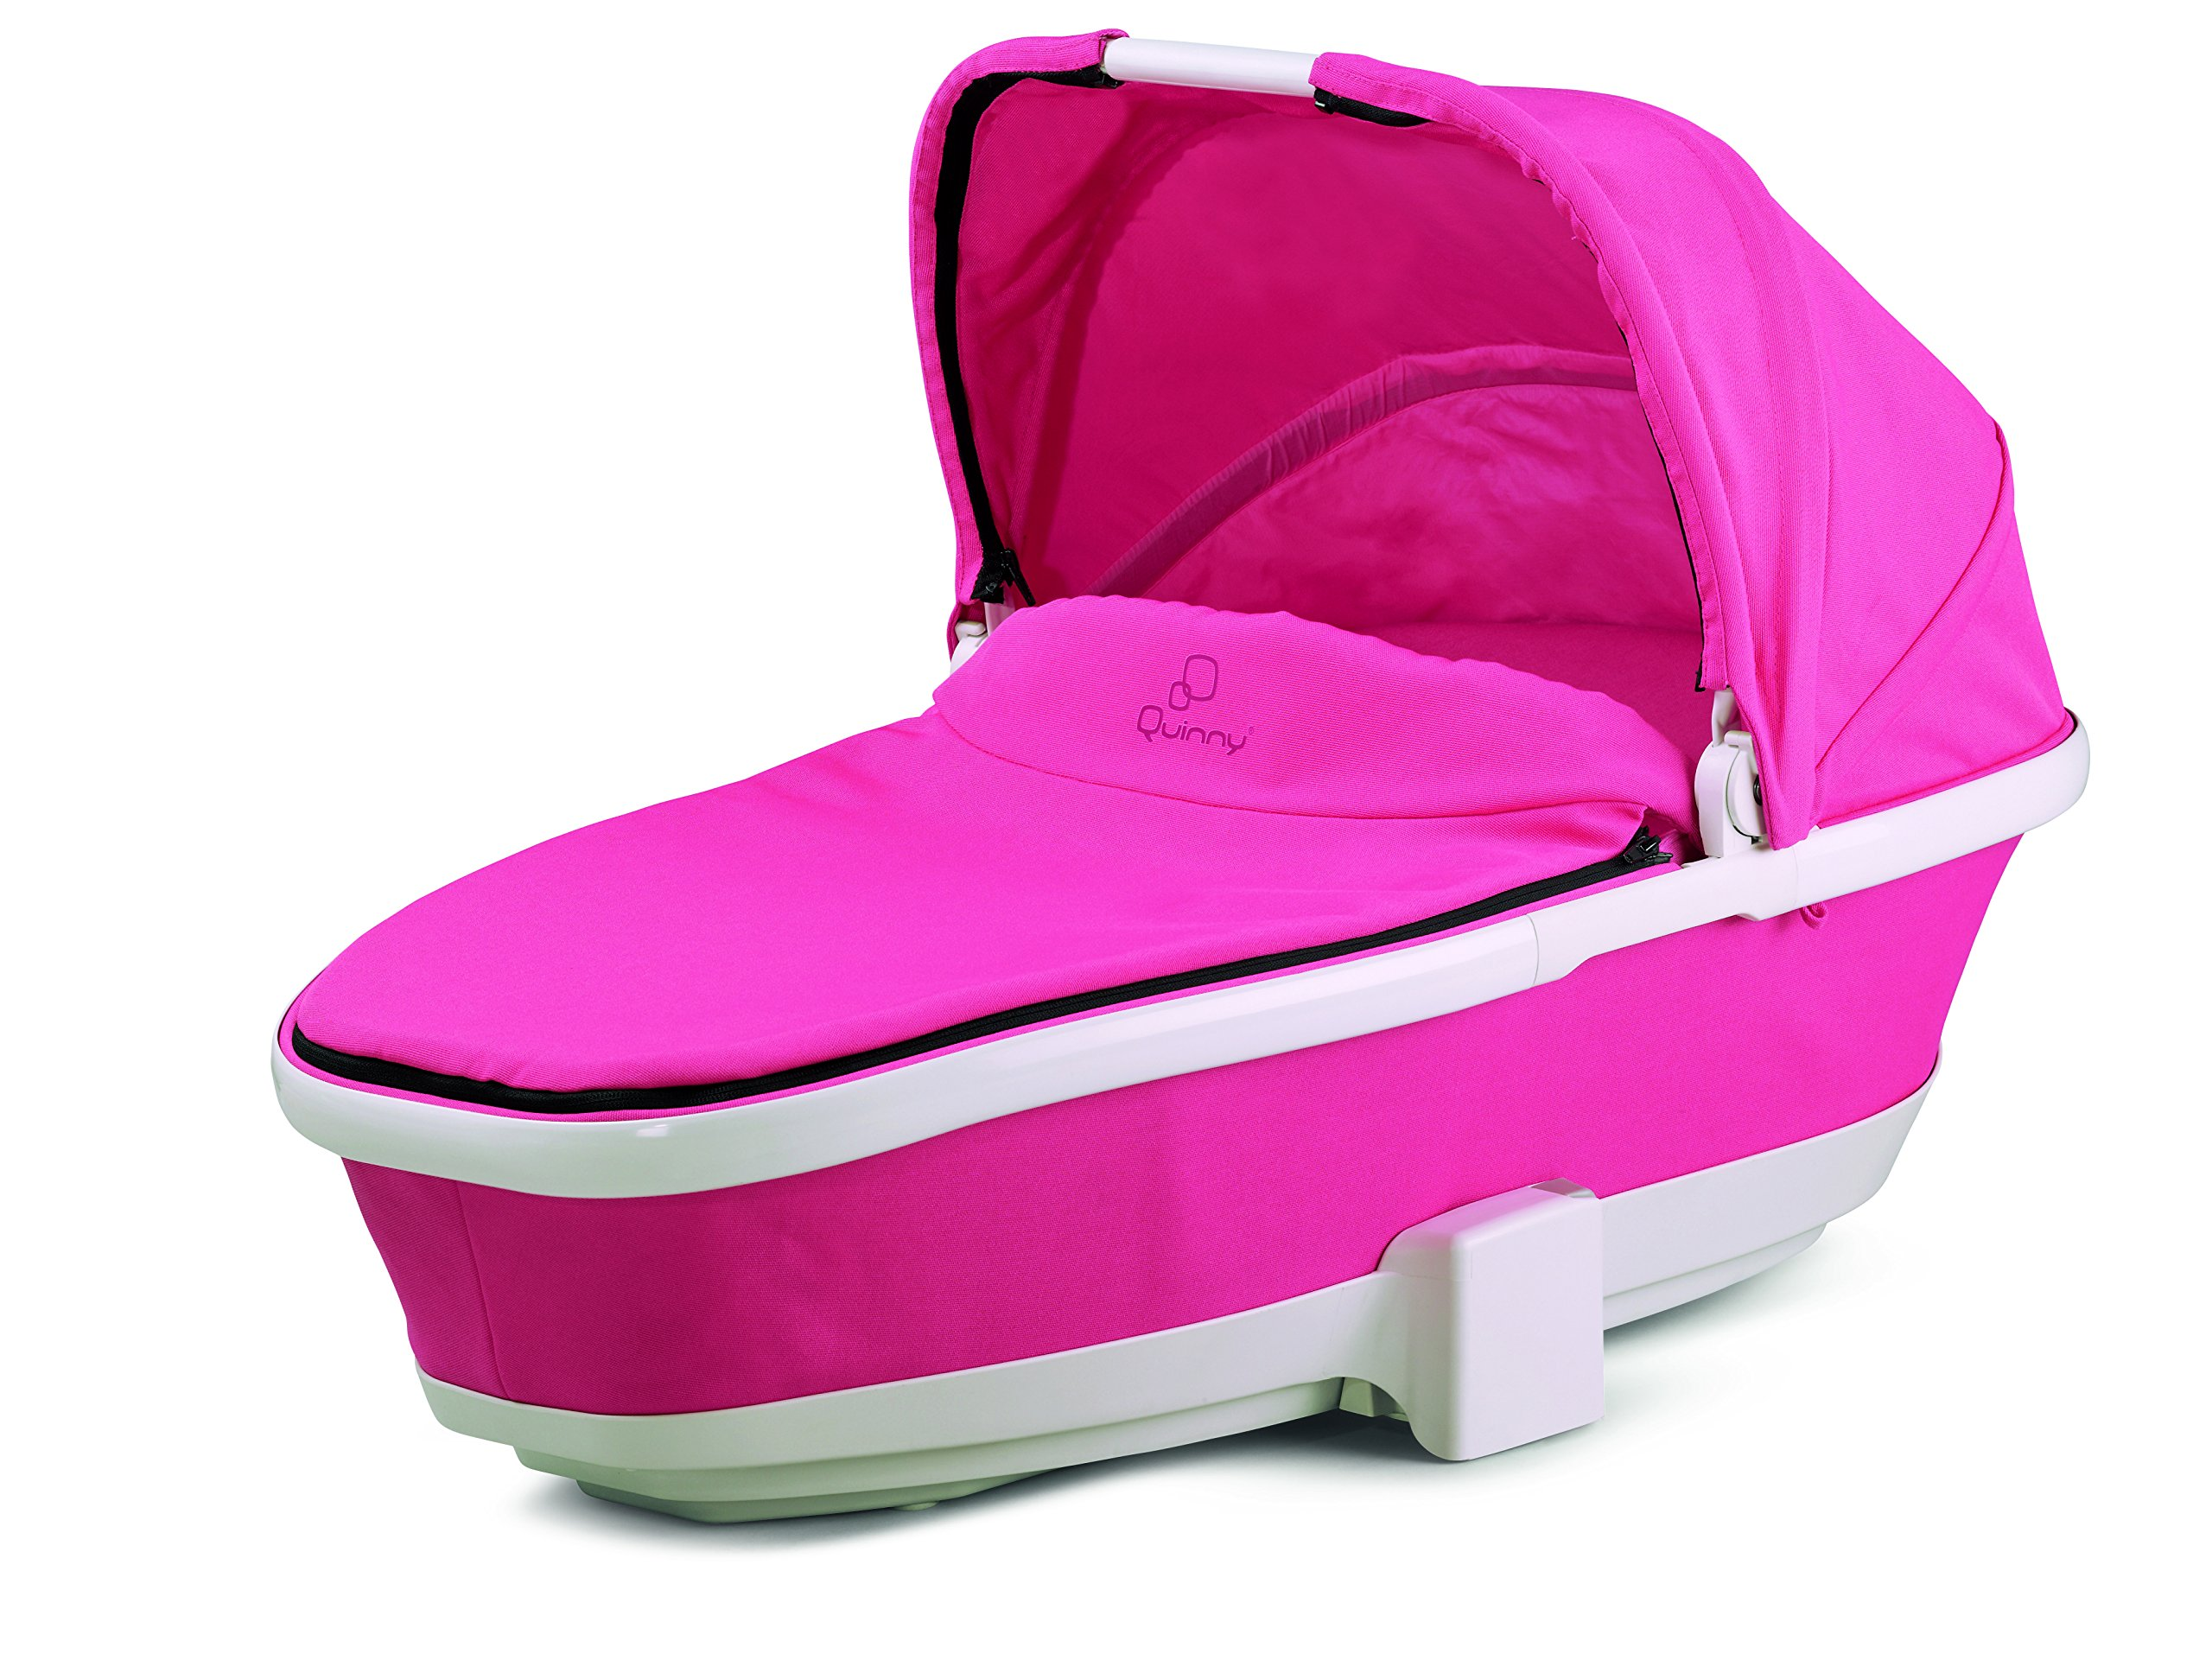 Quinny Tukk Foldable Carrier, Pink Precious by Quinny (Image #1)